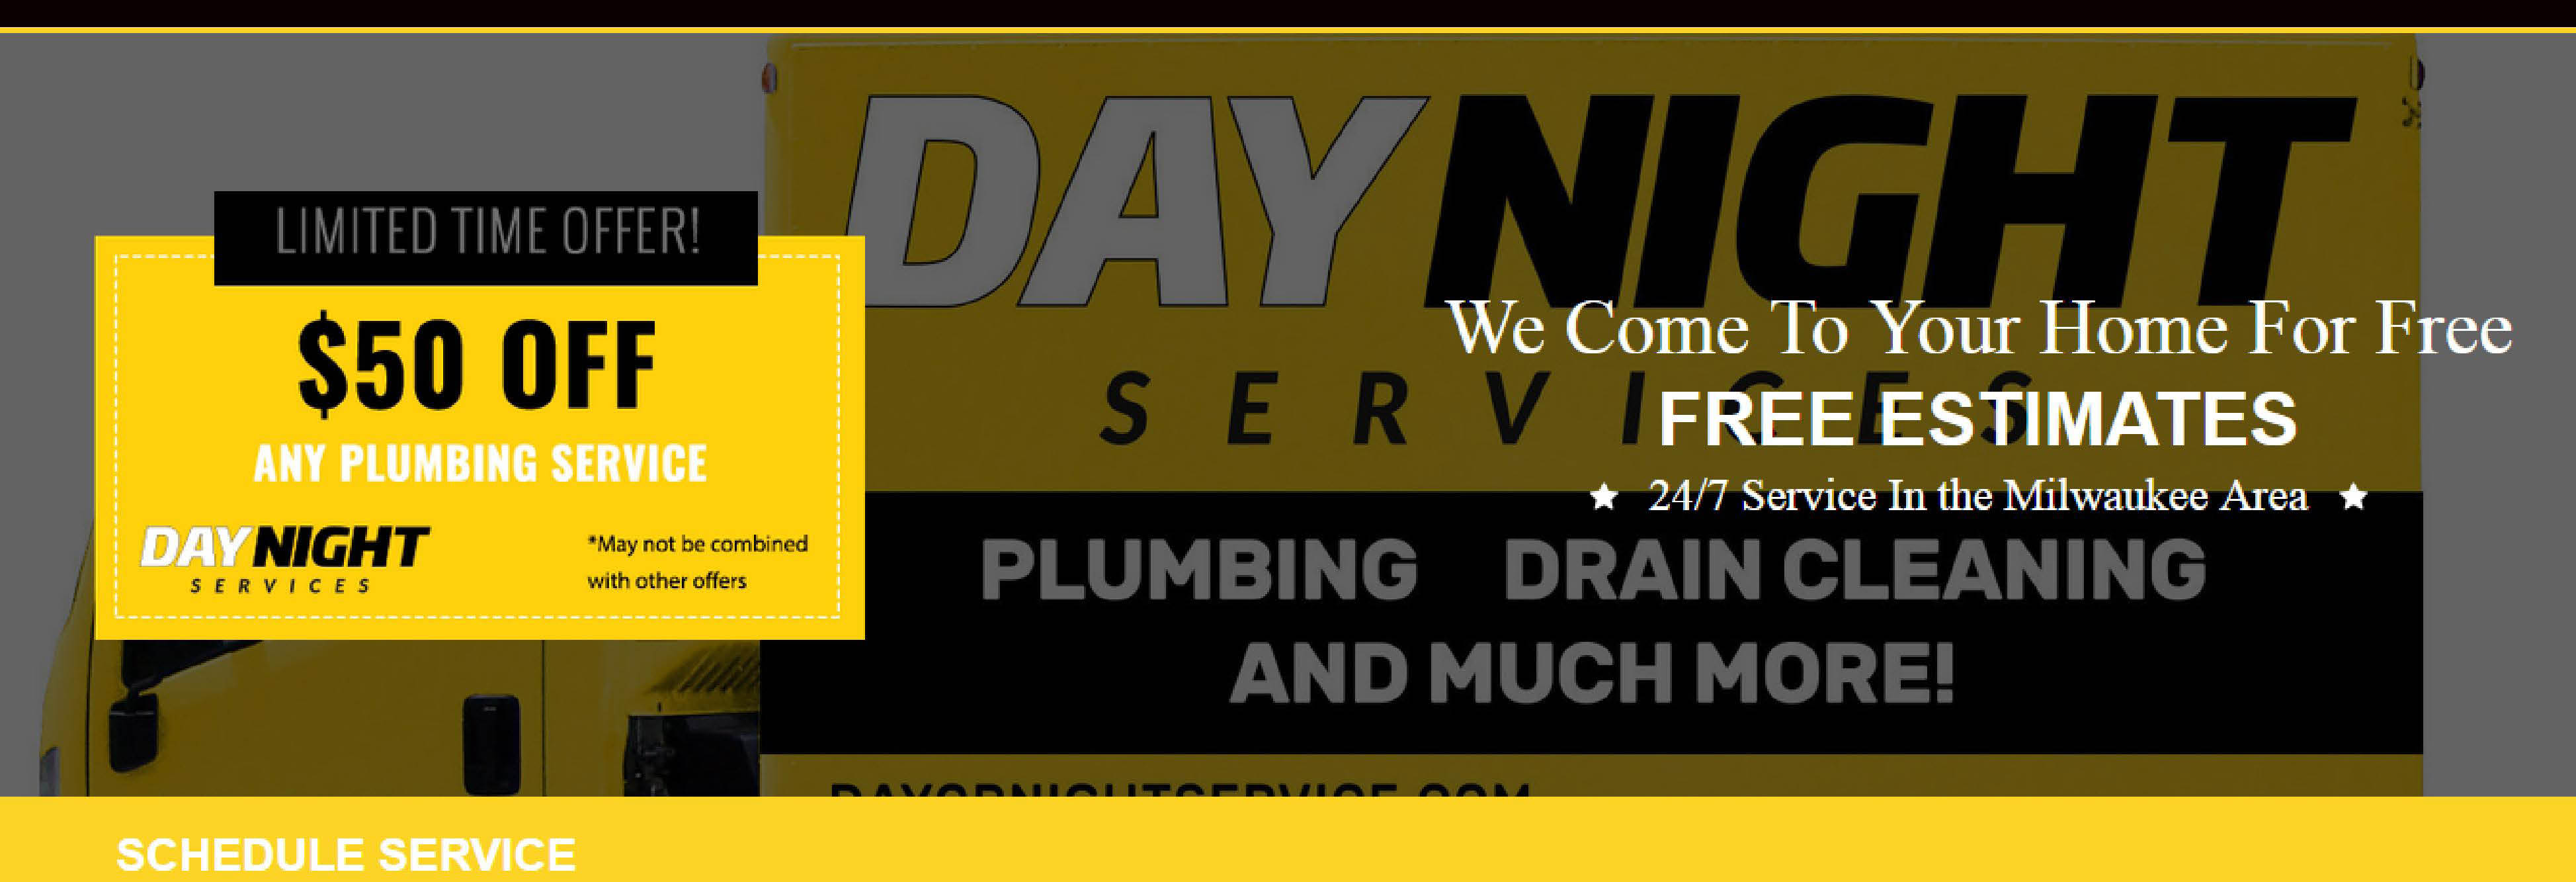 DayNight Services Milwaukee, Greenfield, West Allis banner